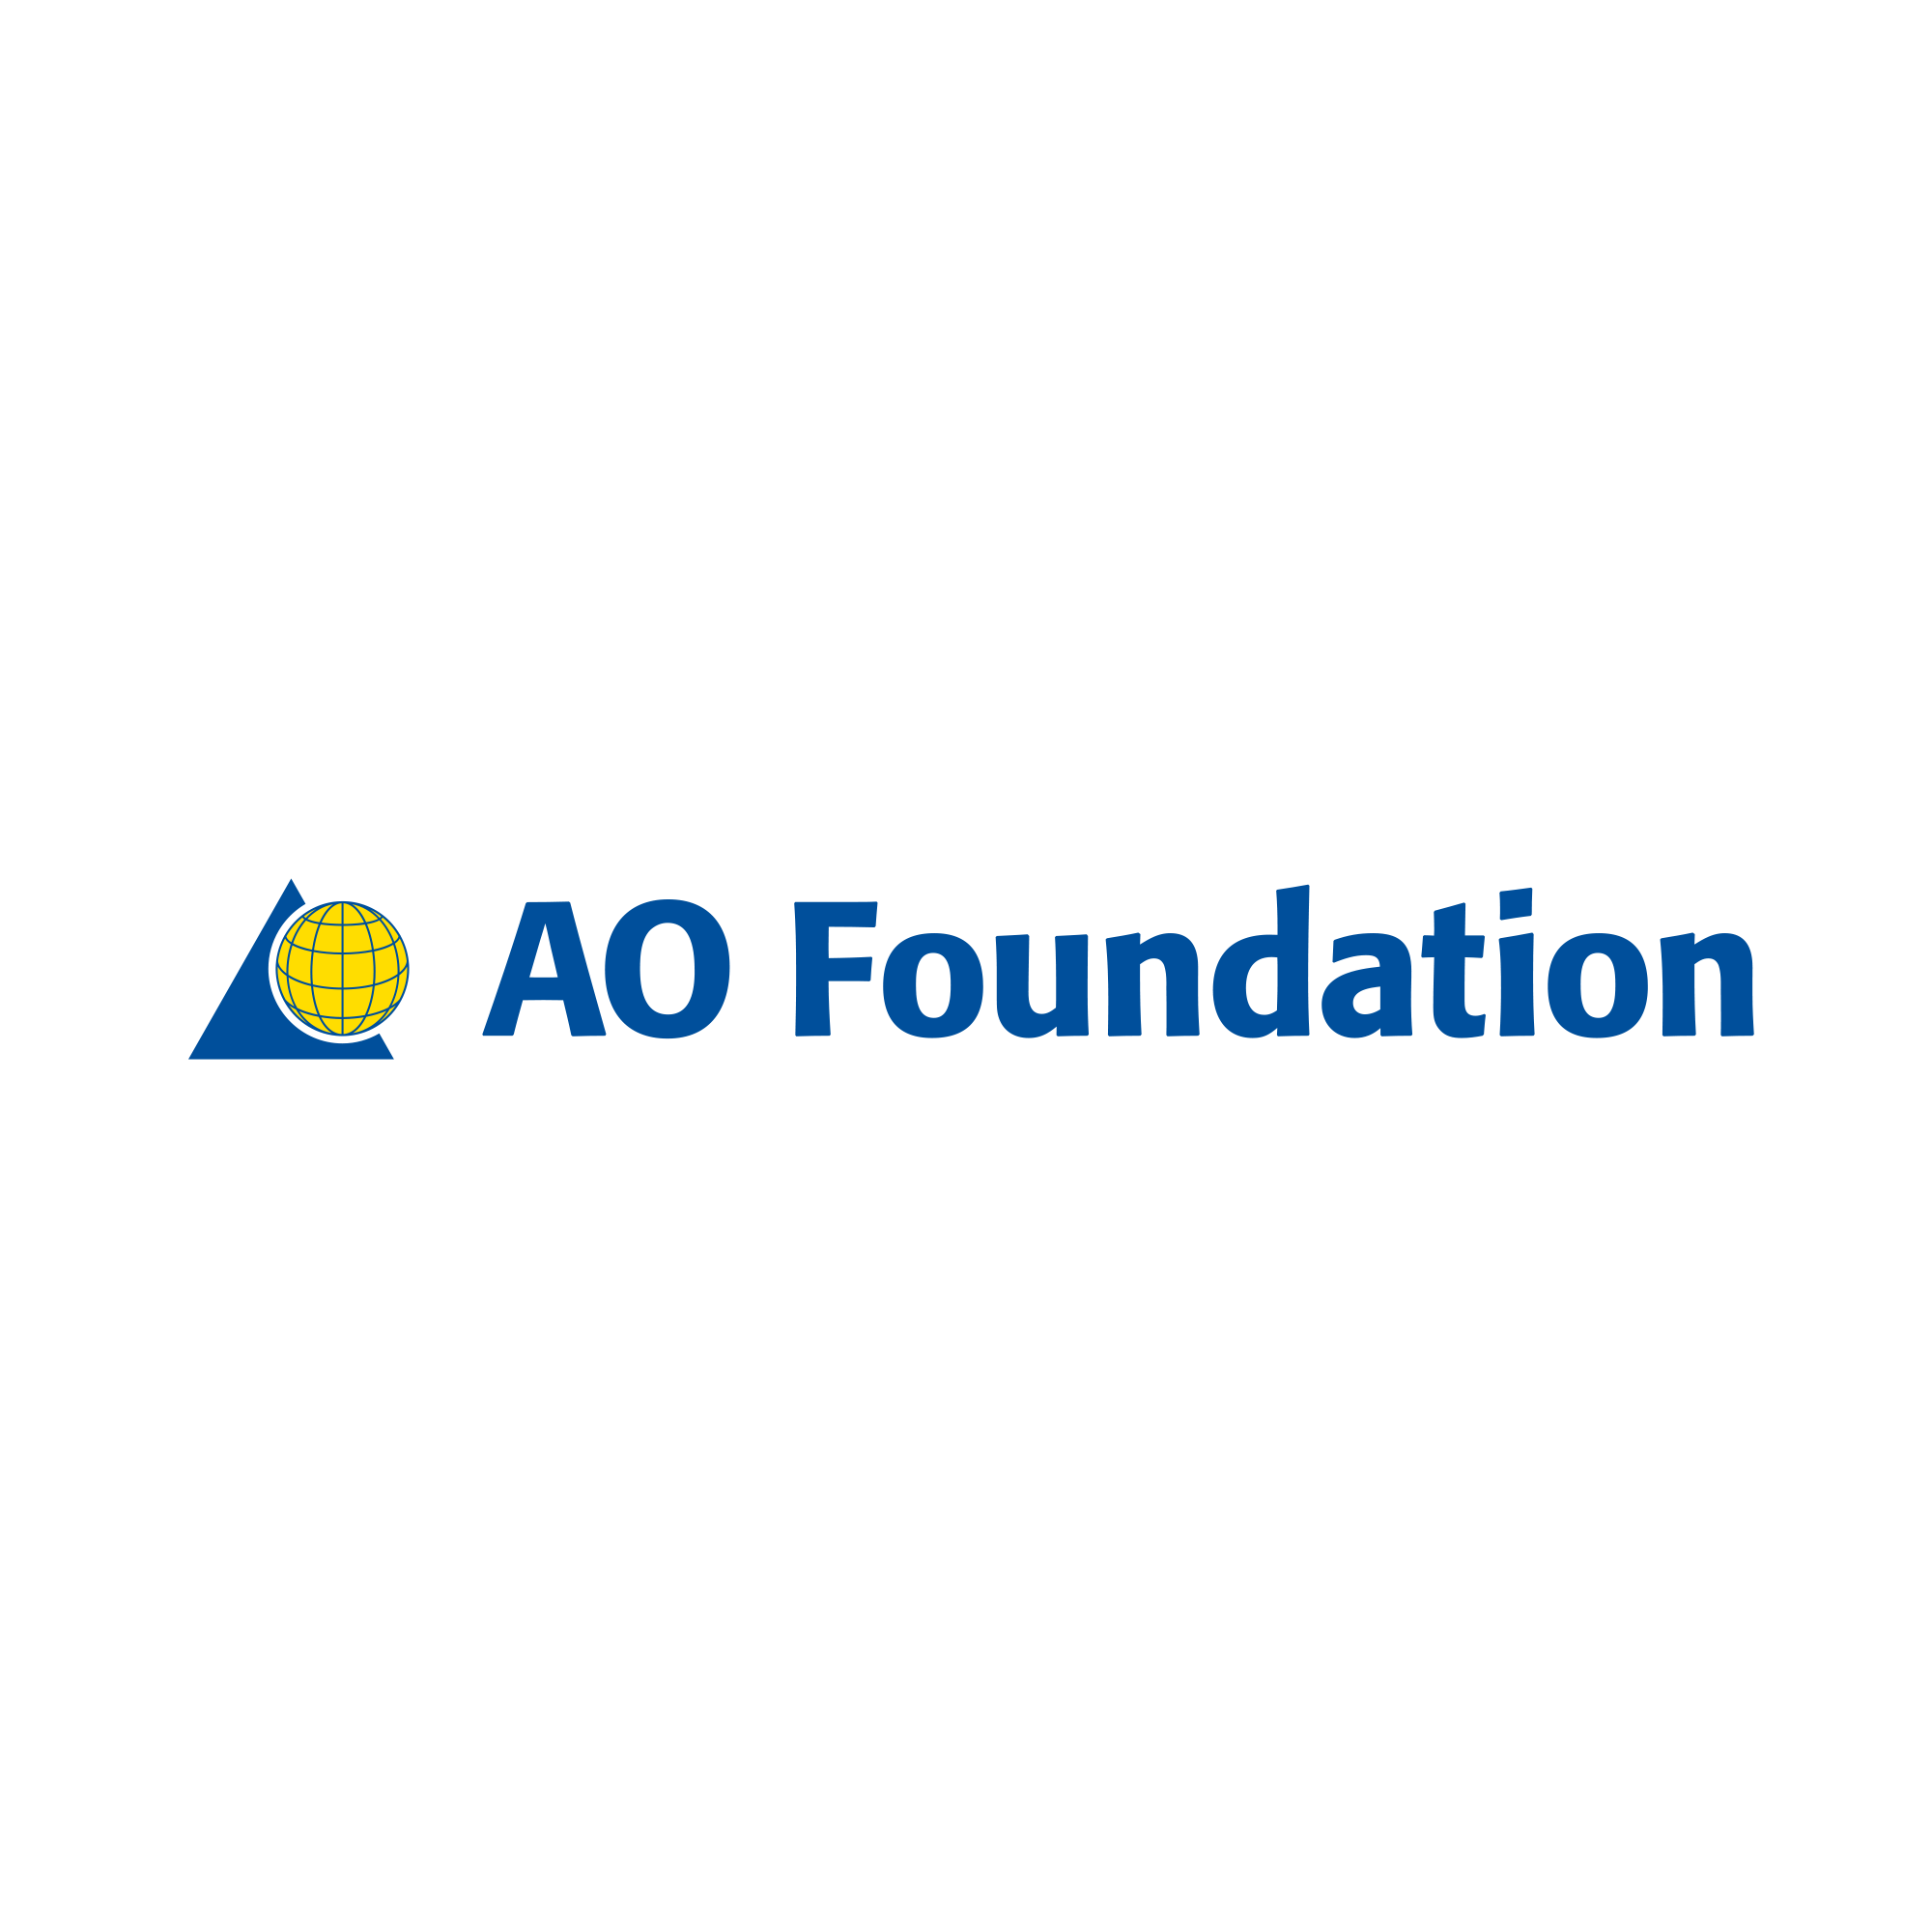 AO Foundation